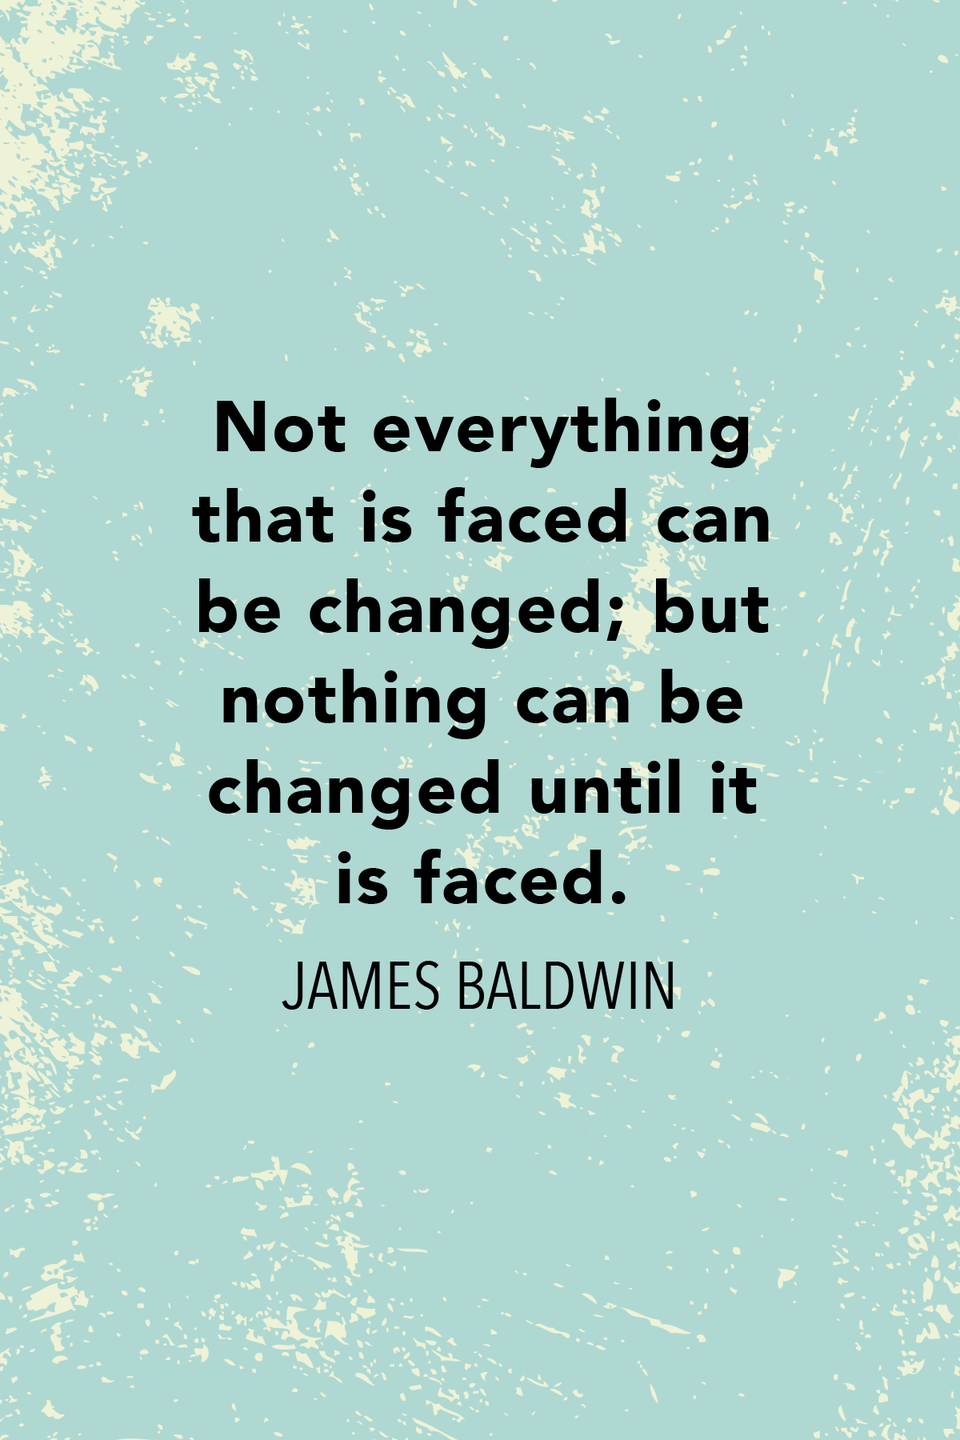 """<p>""""Not everything that is faced can be changed; but nothing can be changed until it is faced,"""" he said in <em>The New York Times</em> in 1962.</p>"""